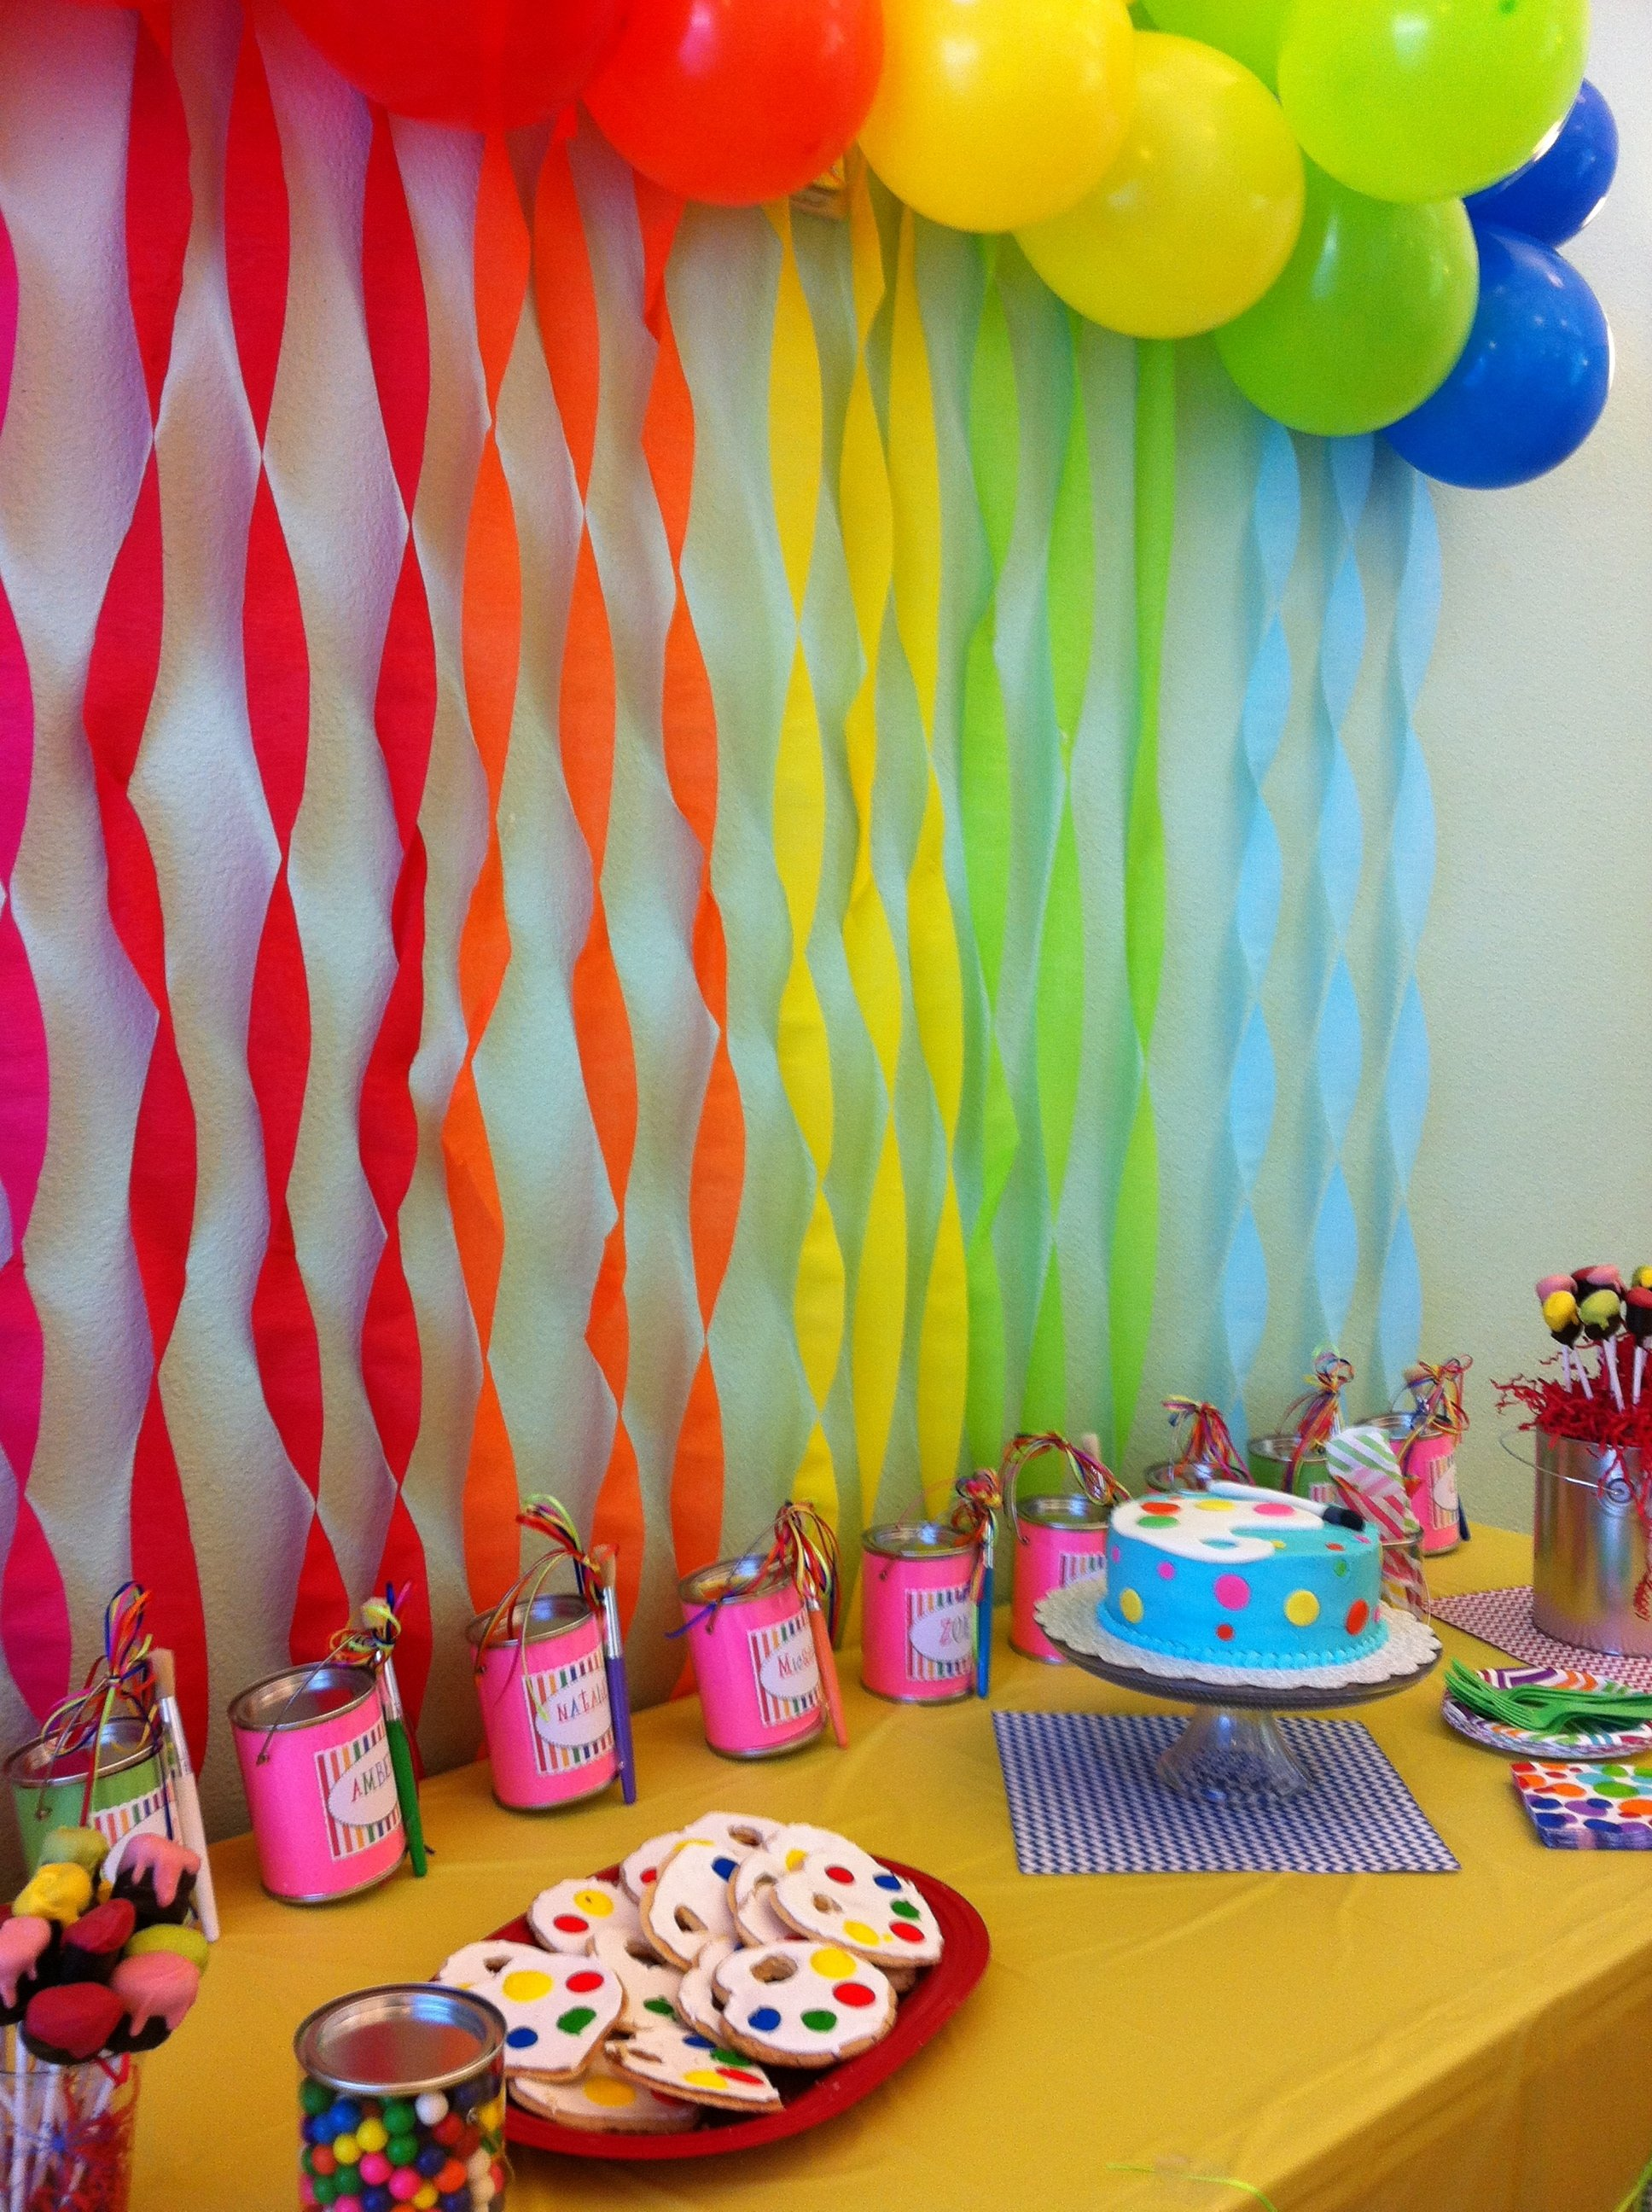 10 Stylish Birthday Party Ideas For A 3 Year Old Dazzling